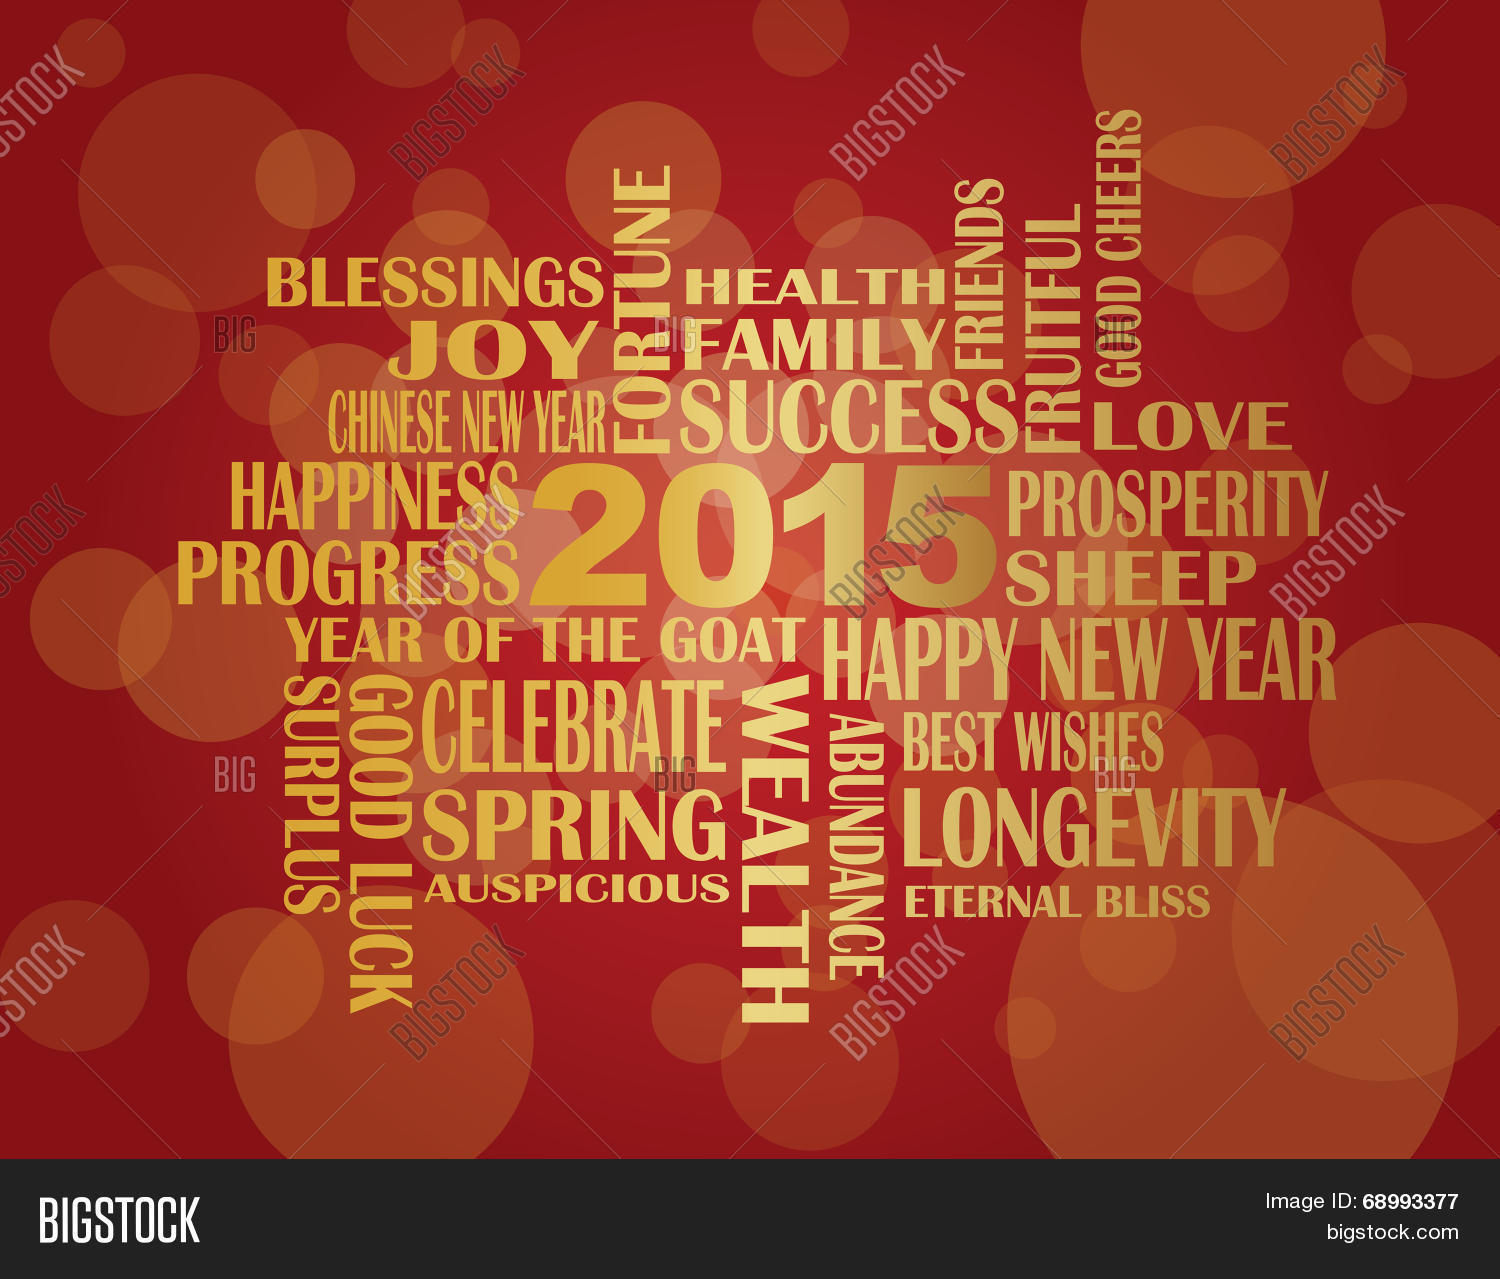 2015 chinese new year english vector photo bigstock 2015 chinese new year english greetings red background illustration kristyandbryce Image collections